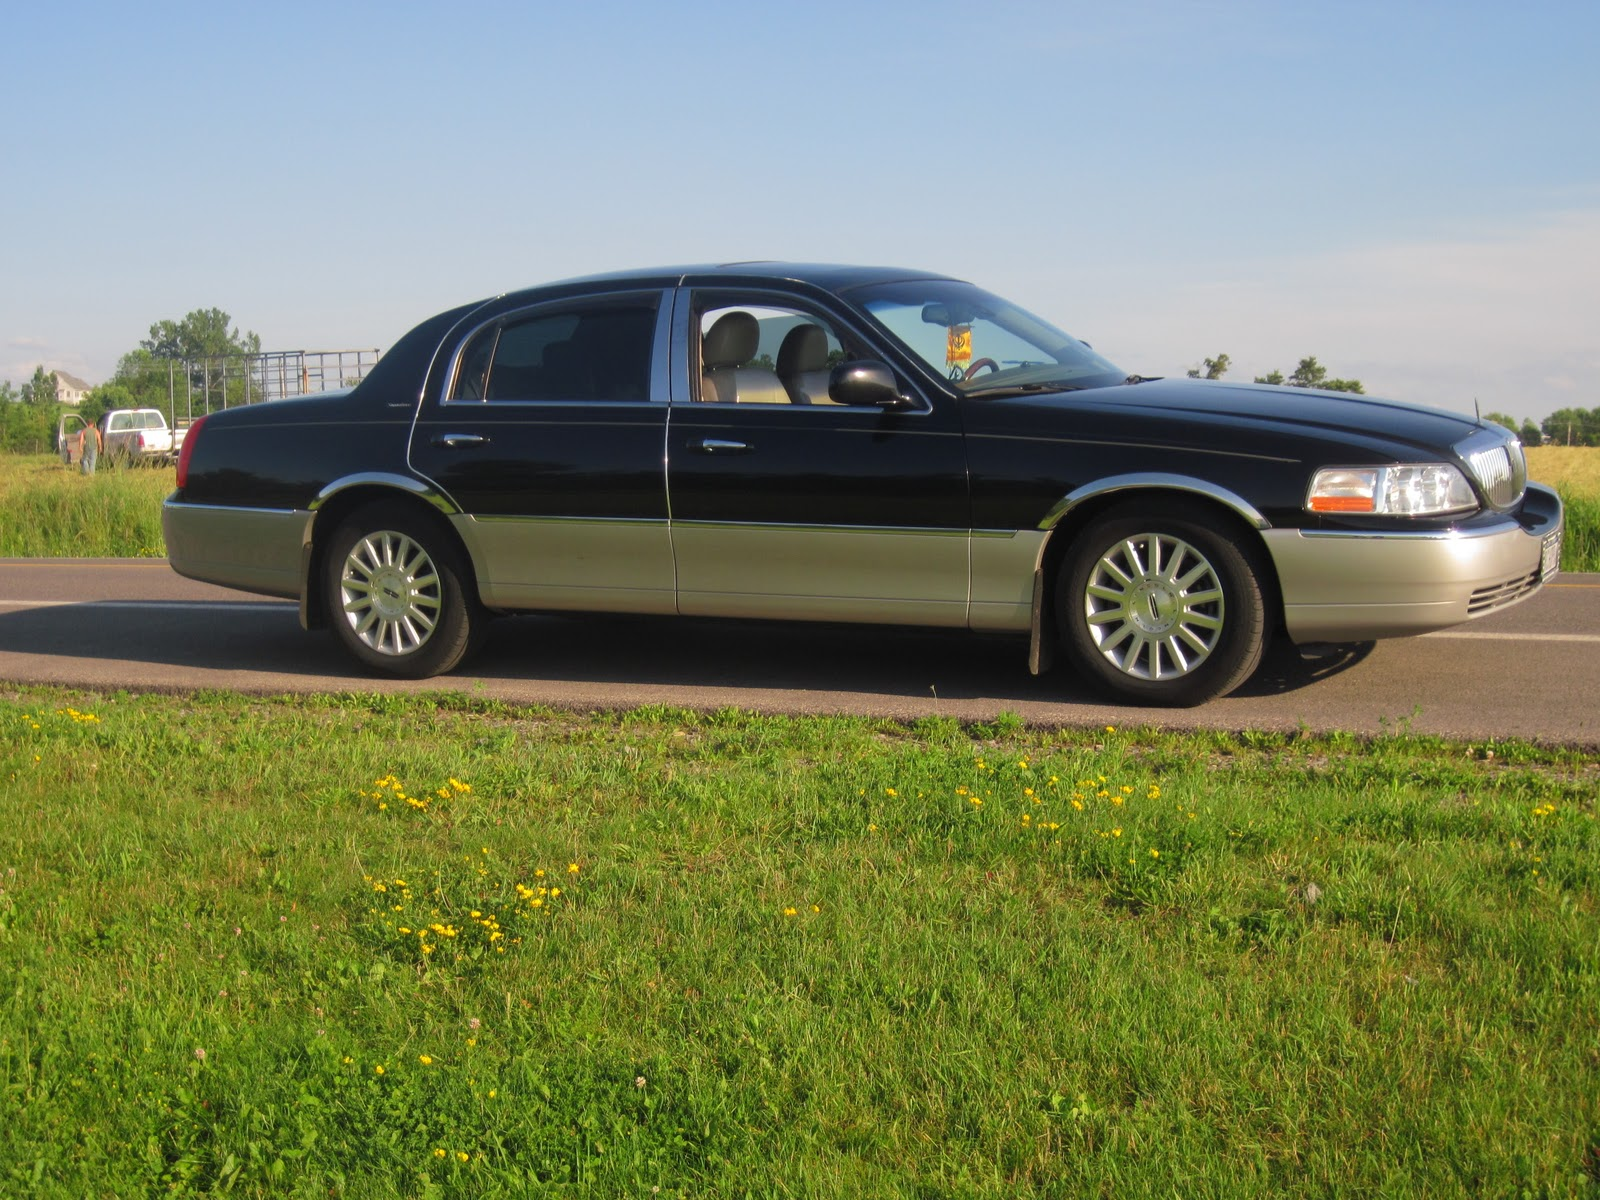 Mr Singh Transportation Taxi Syracuse Lincoln Town Car To Book Please Call 315 952 2242